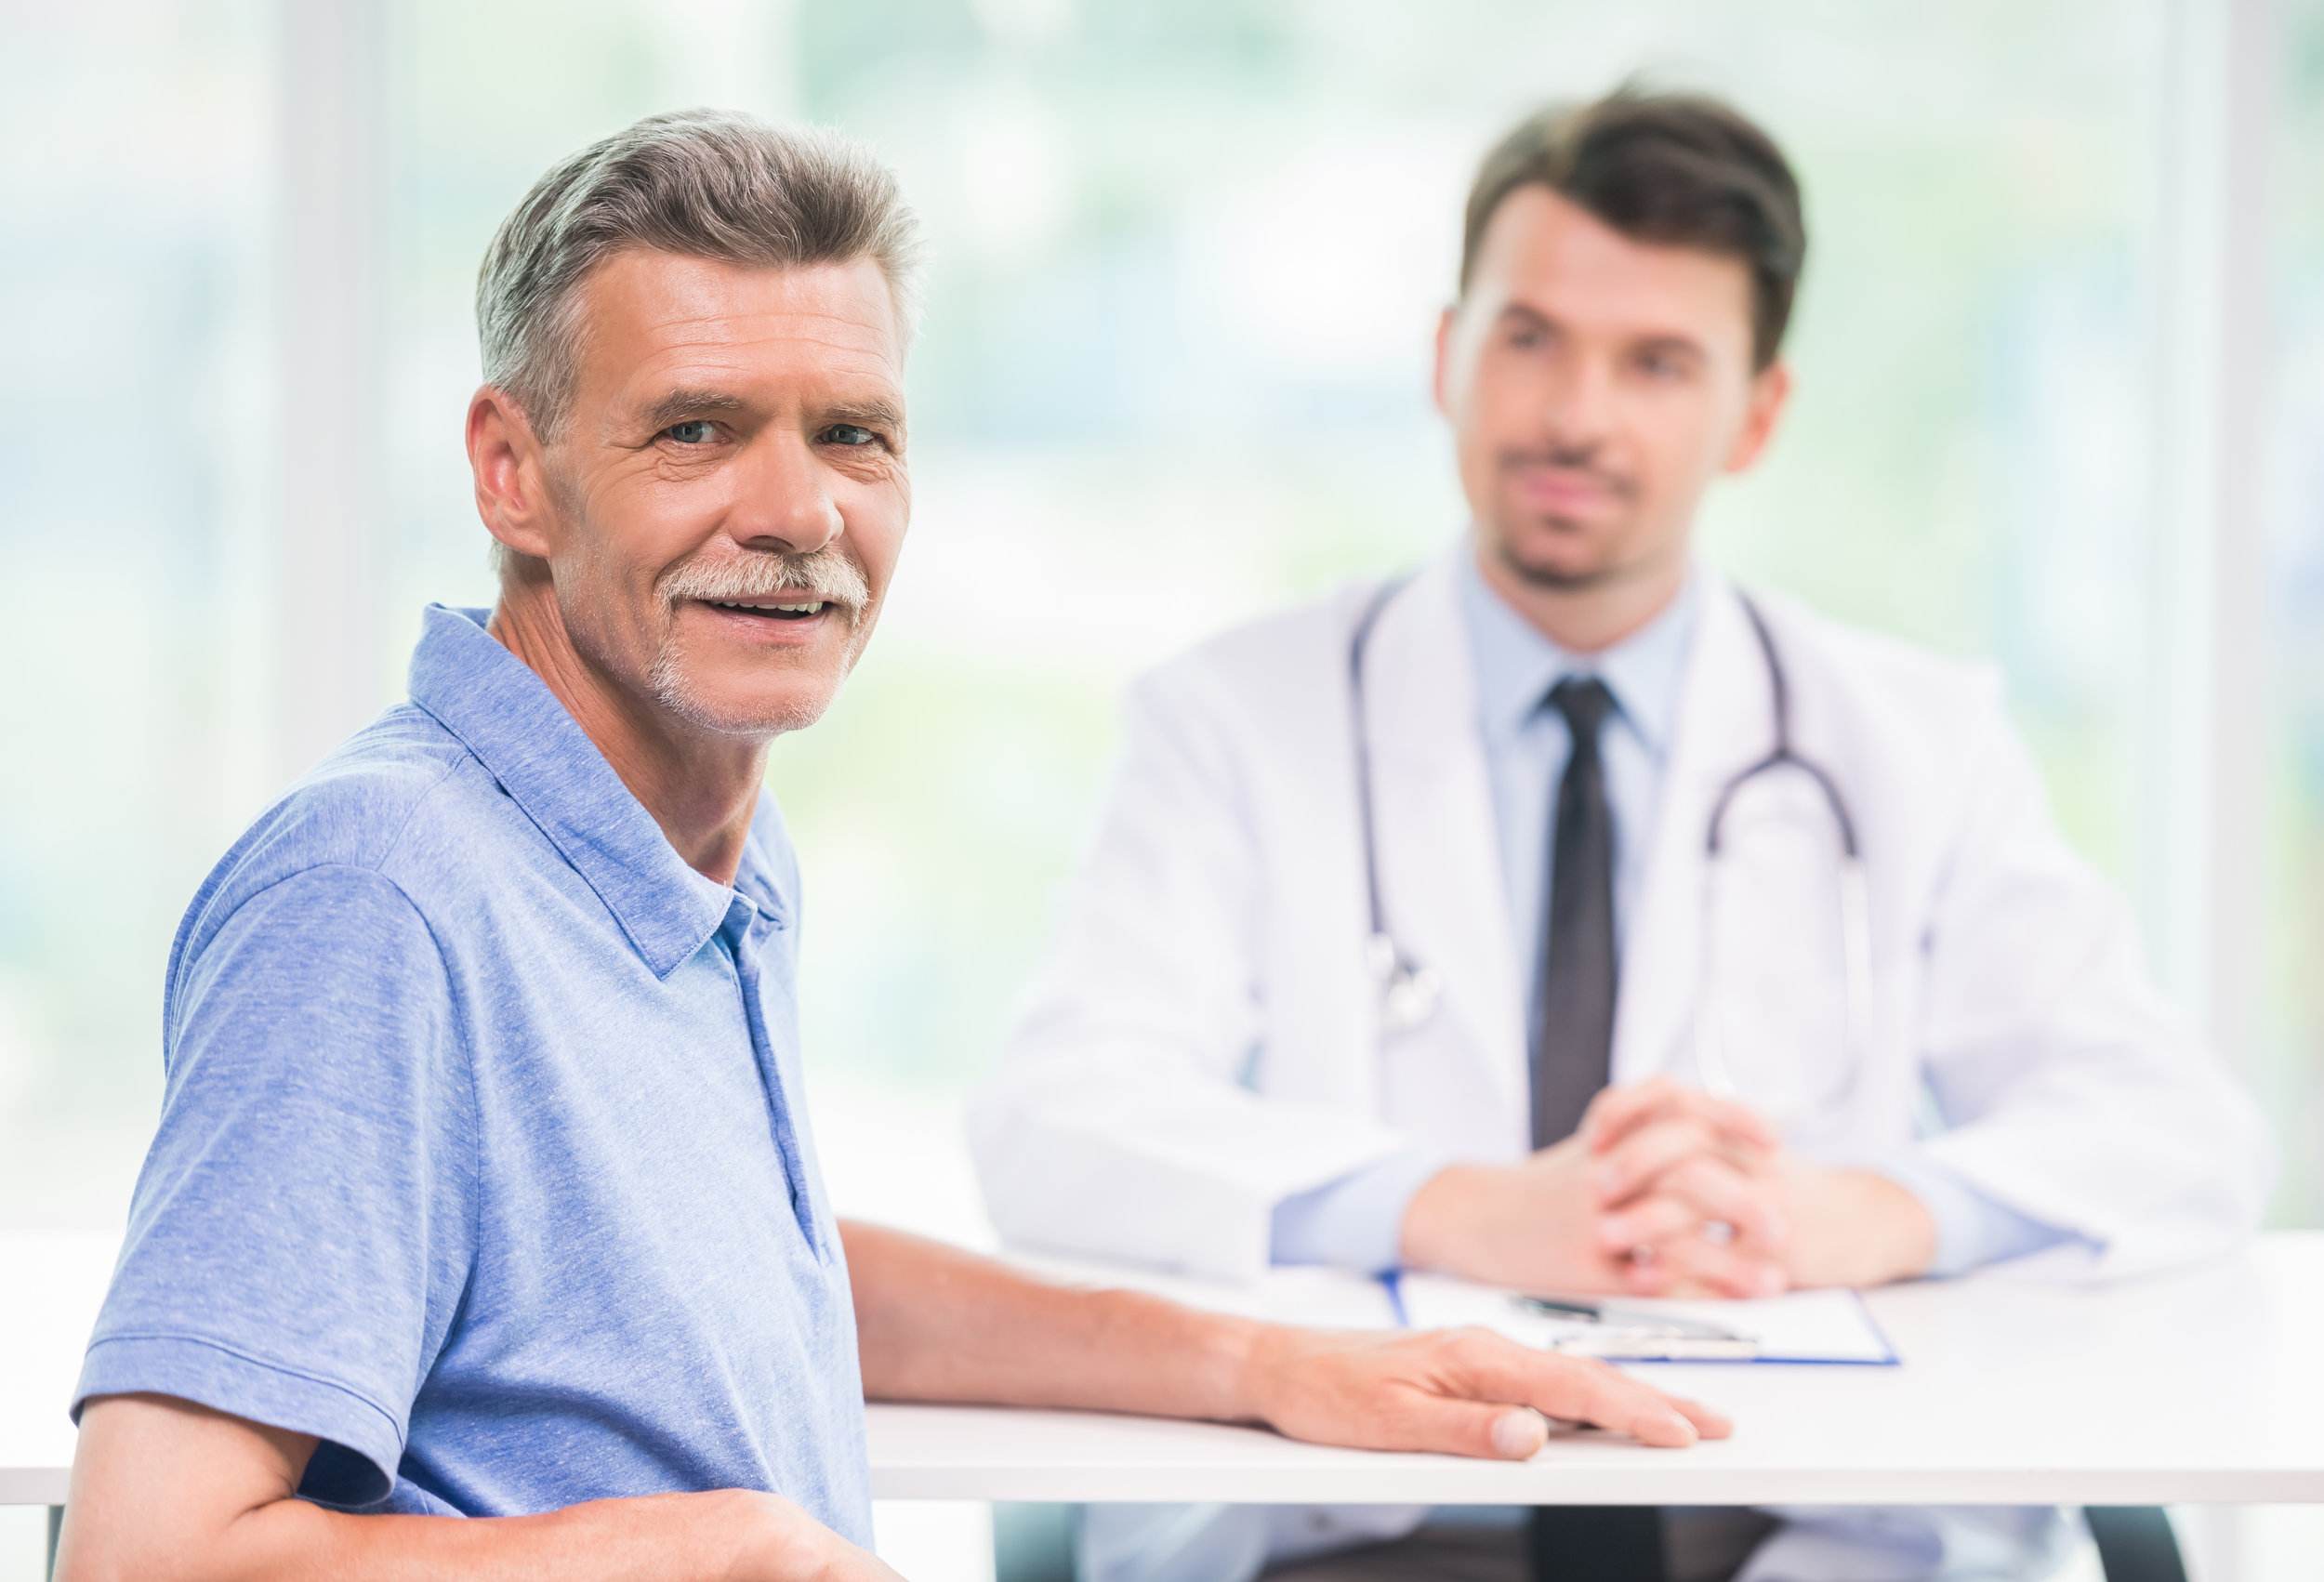 6 important facts to know before your Colonoscopy Procedure